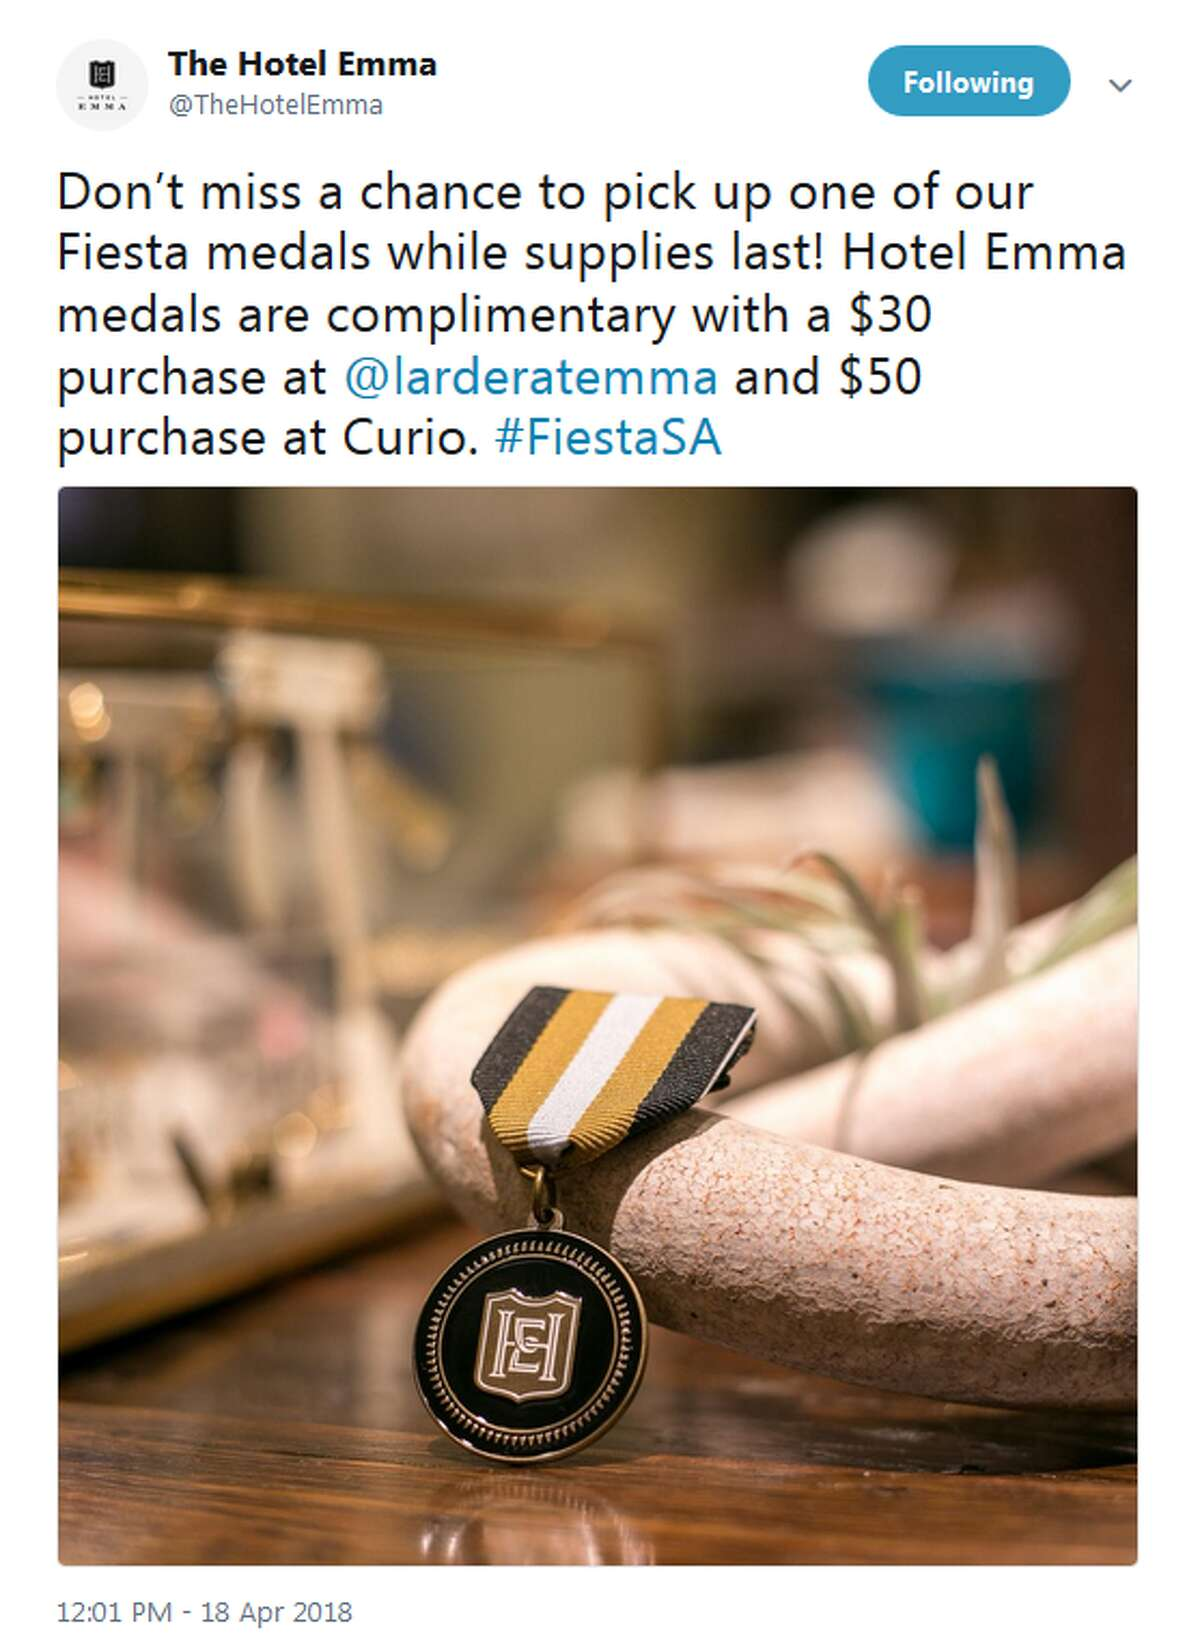 Hotel Emma will give away their medals to customers who spend $30 at Larder or $50 at Curio.